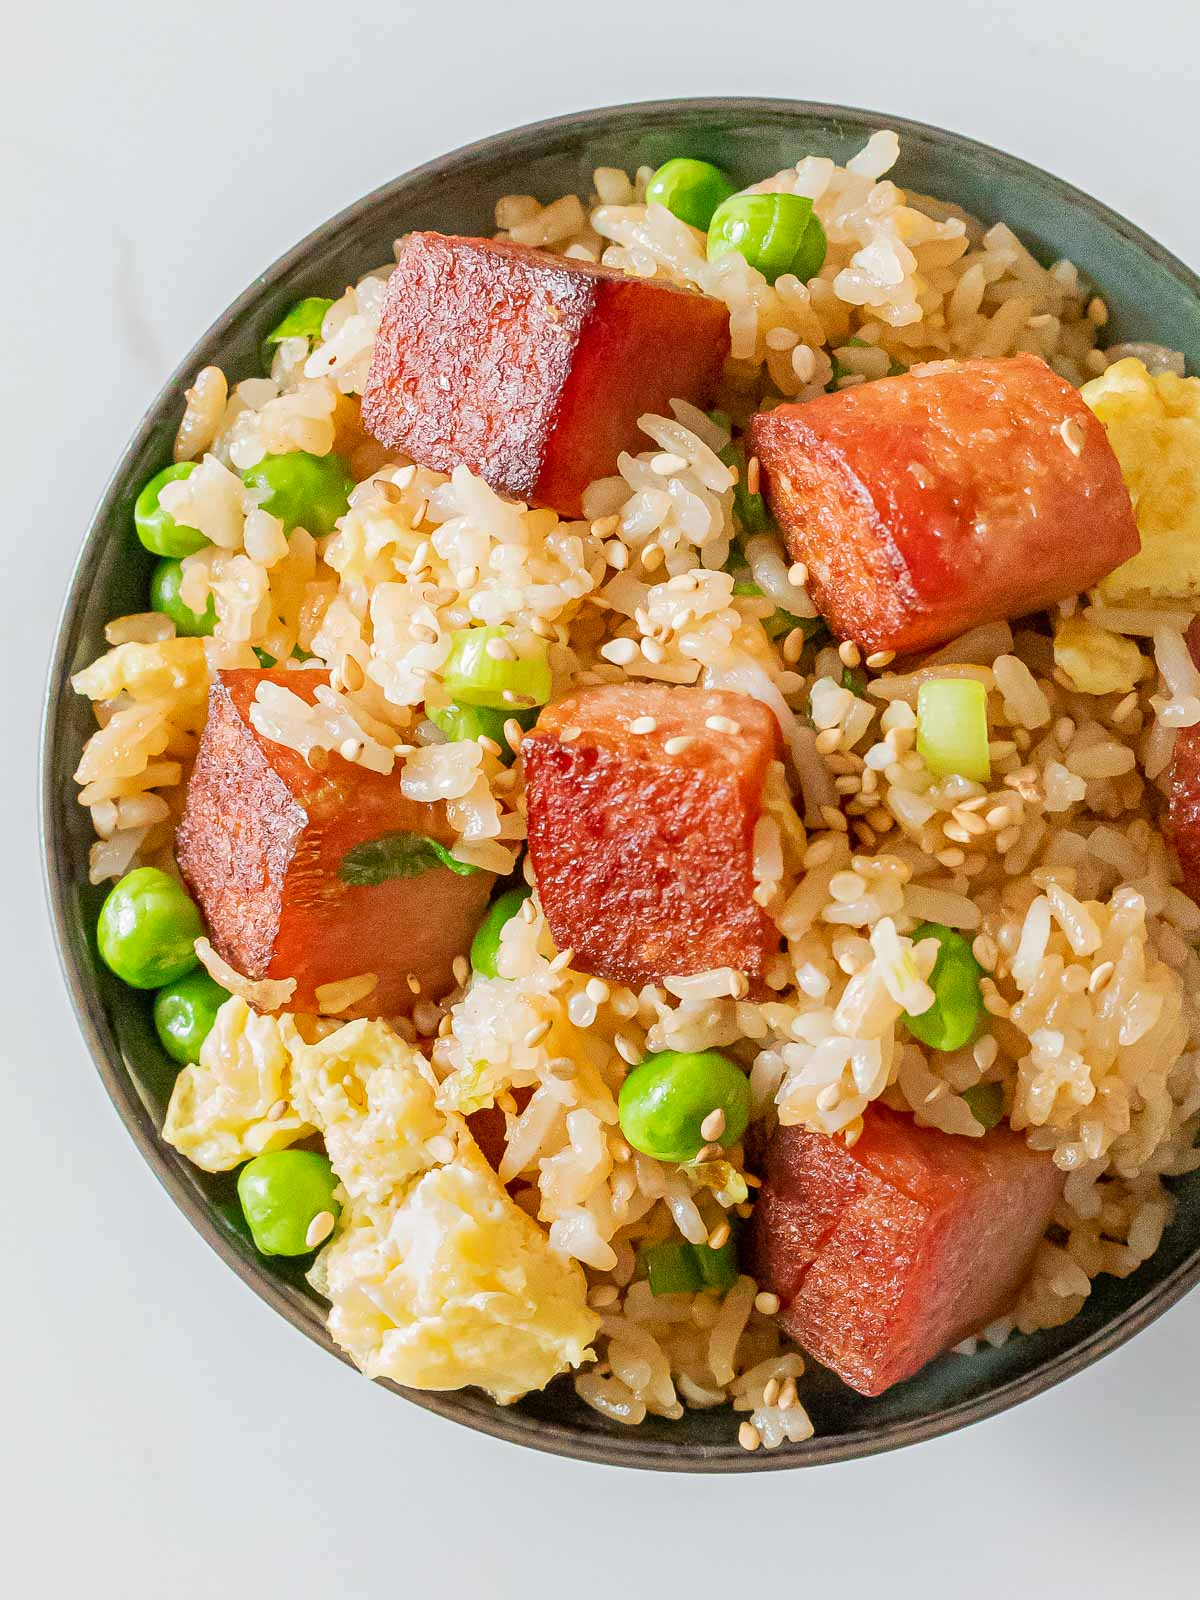 bowl of spam fried rice with crispy cubes of spam, eggs, green peas, and sesame seeds